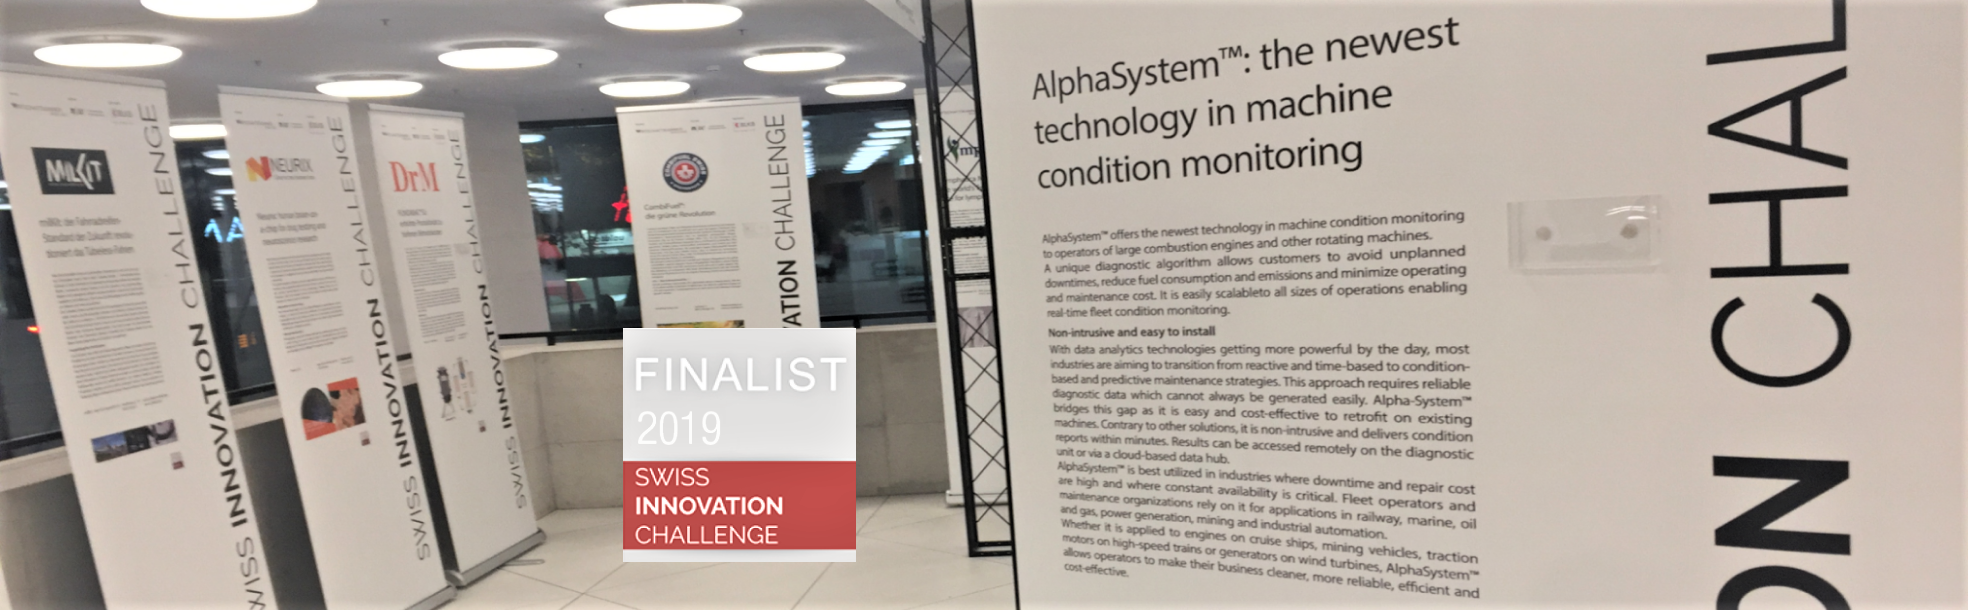 6th Place in 2019 Swiss Innovation Challenge